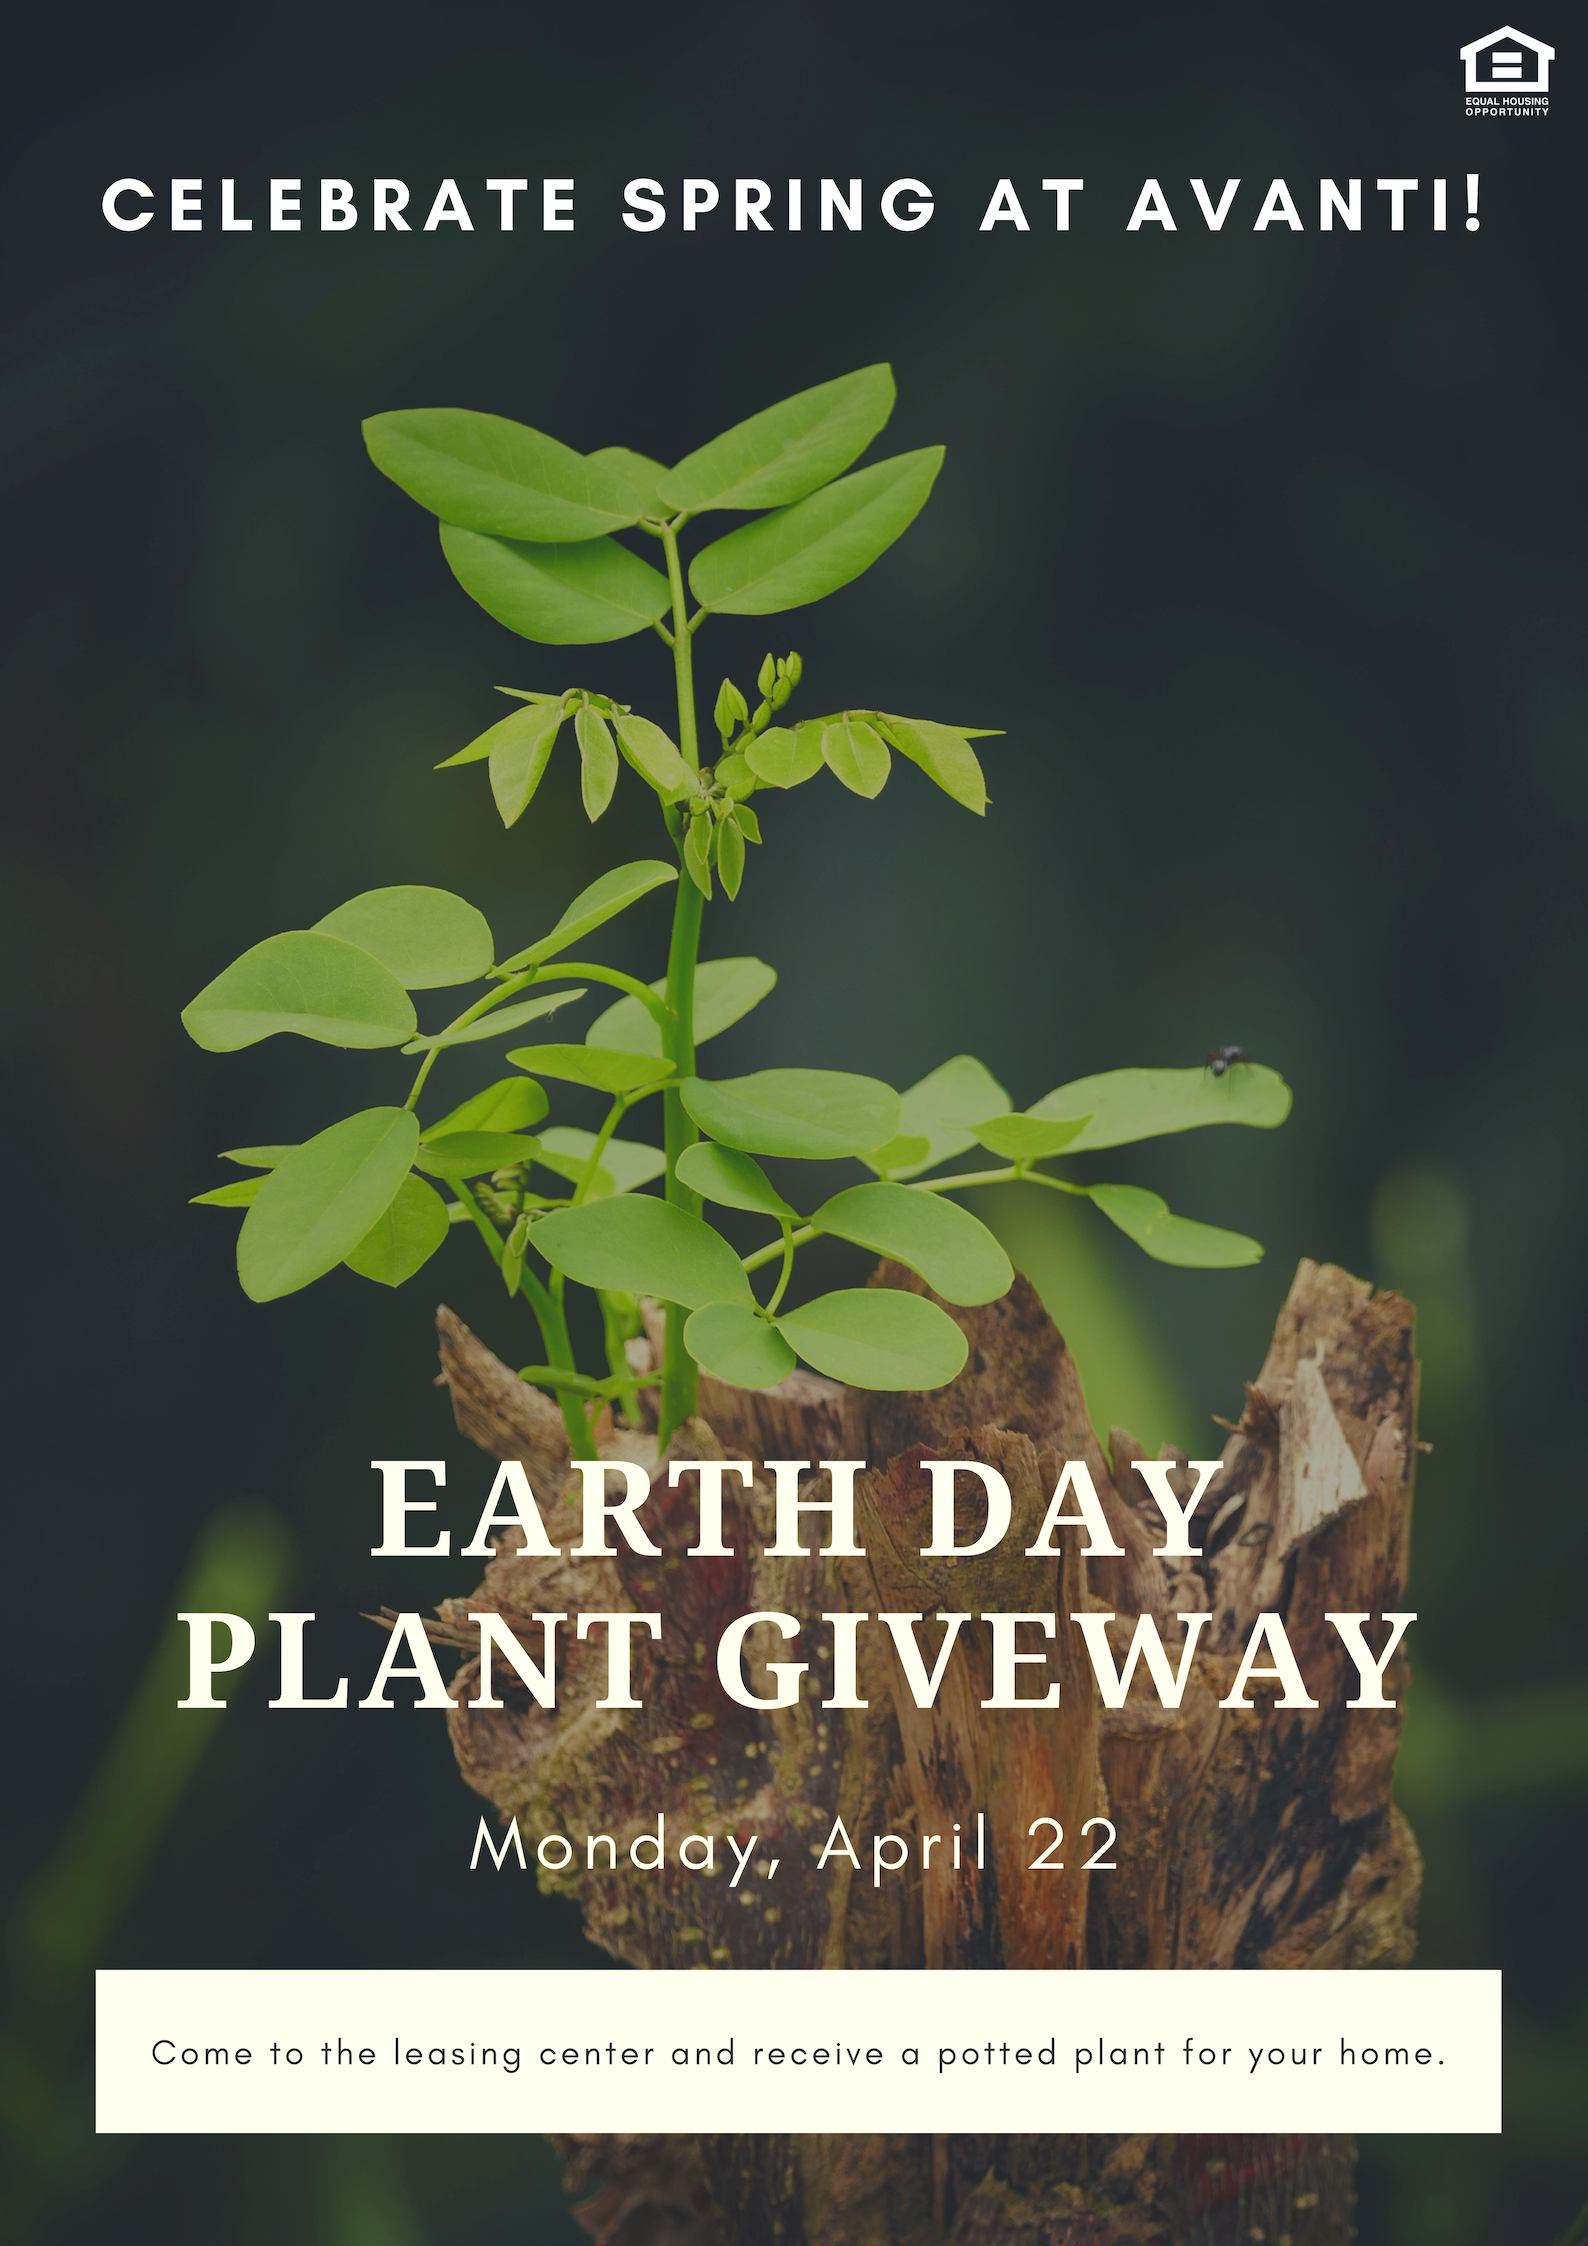 Earth Day Plant Giveaway at Avanti